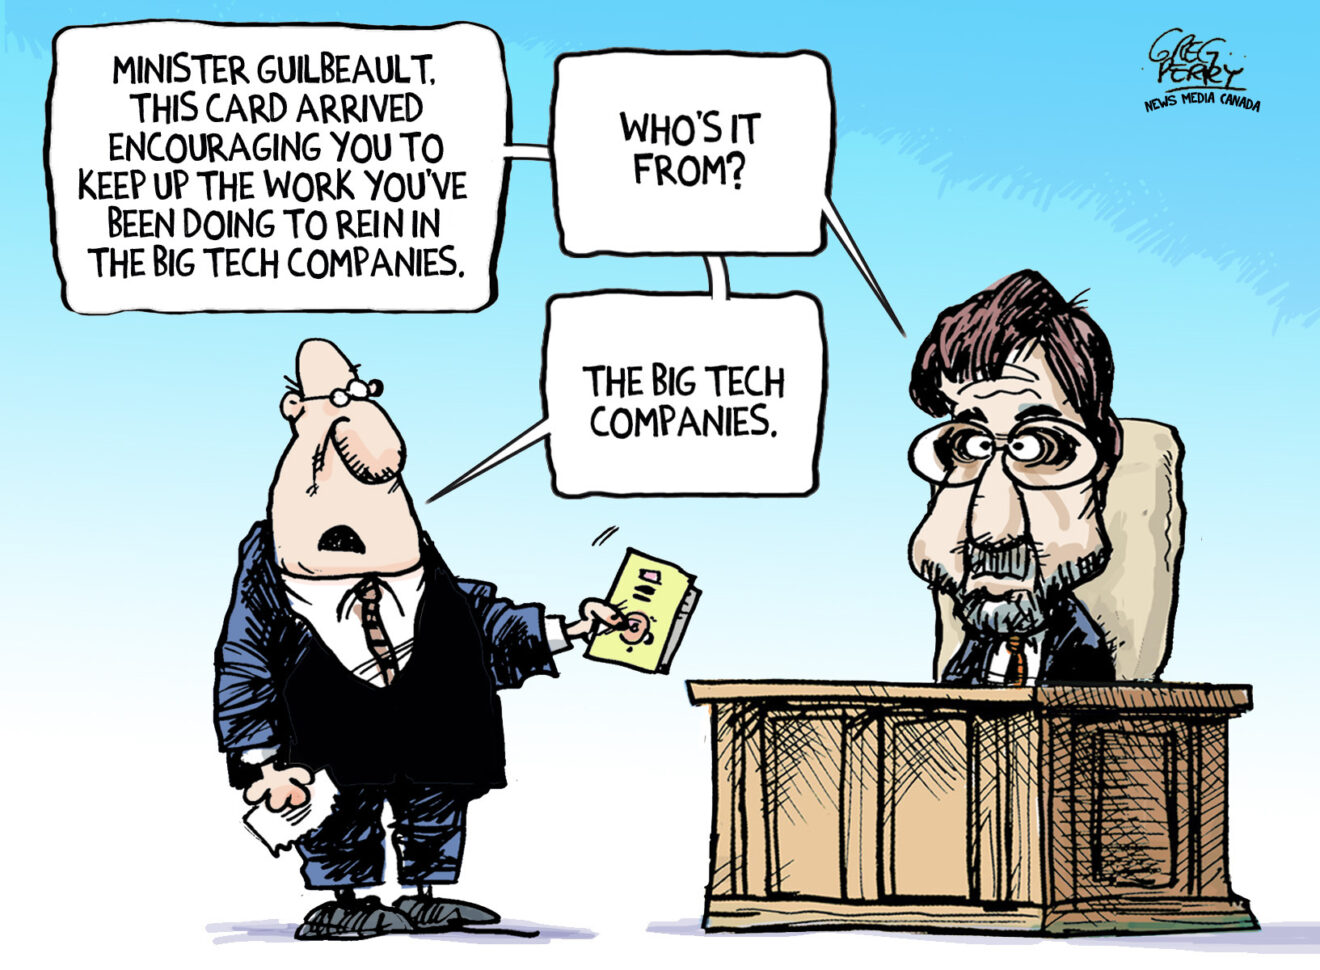 Levelling the Digital Playing Field editorial cartoon now available